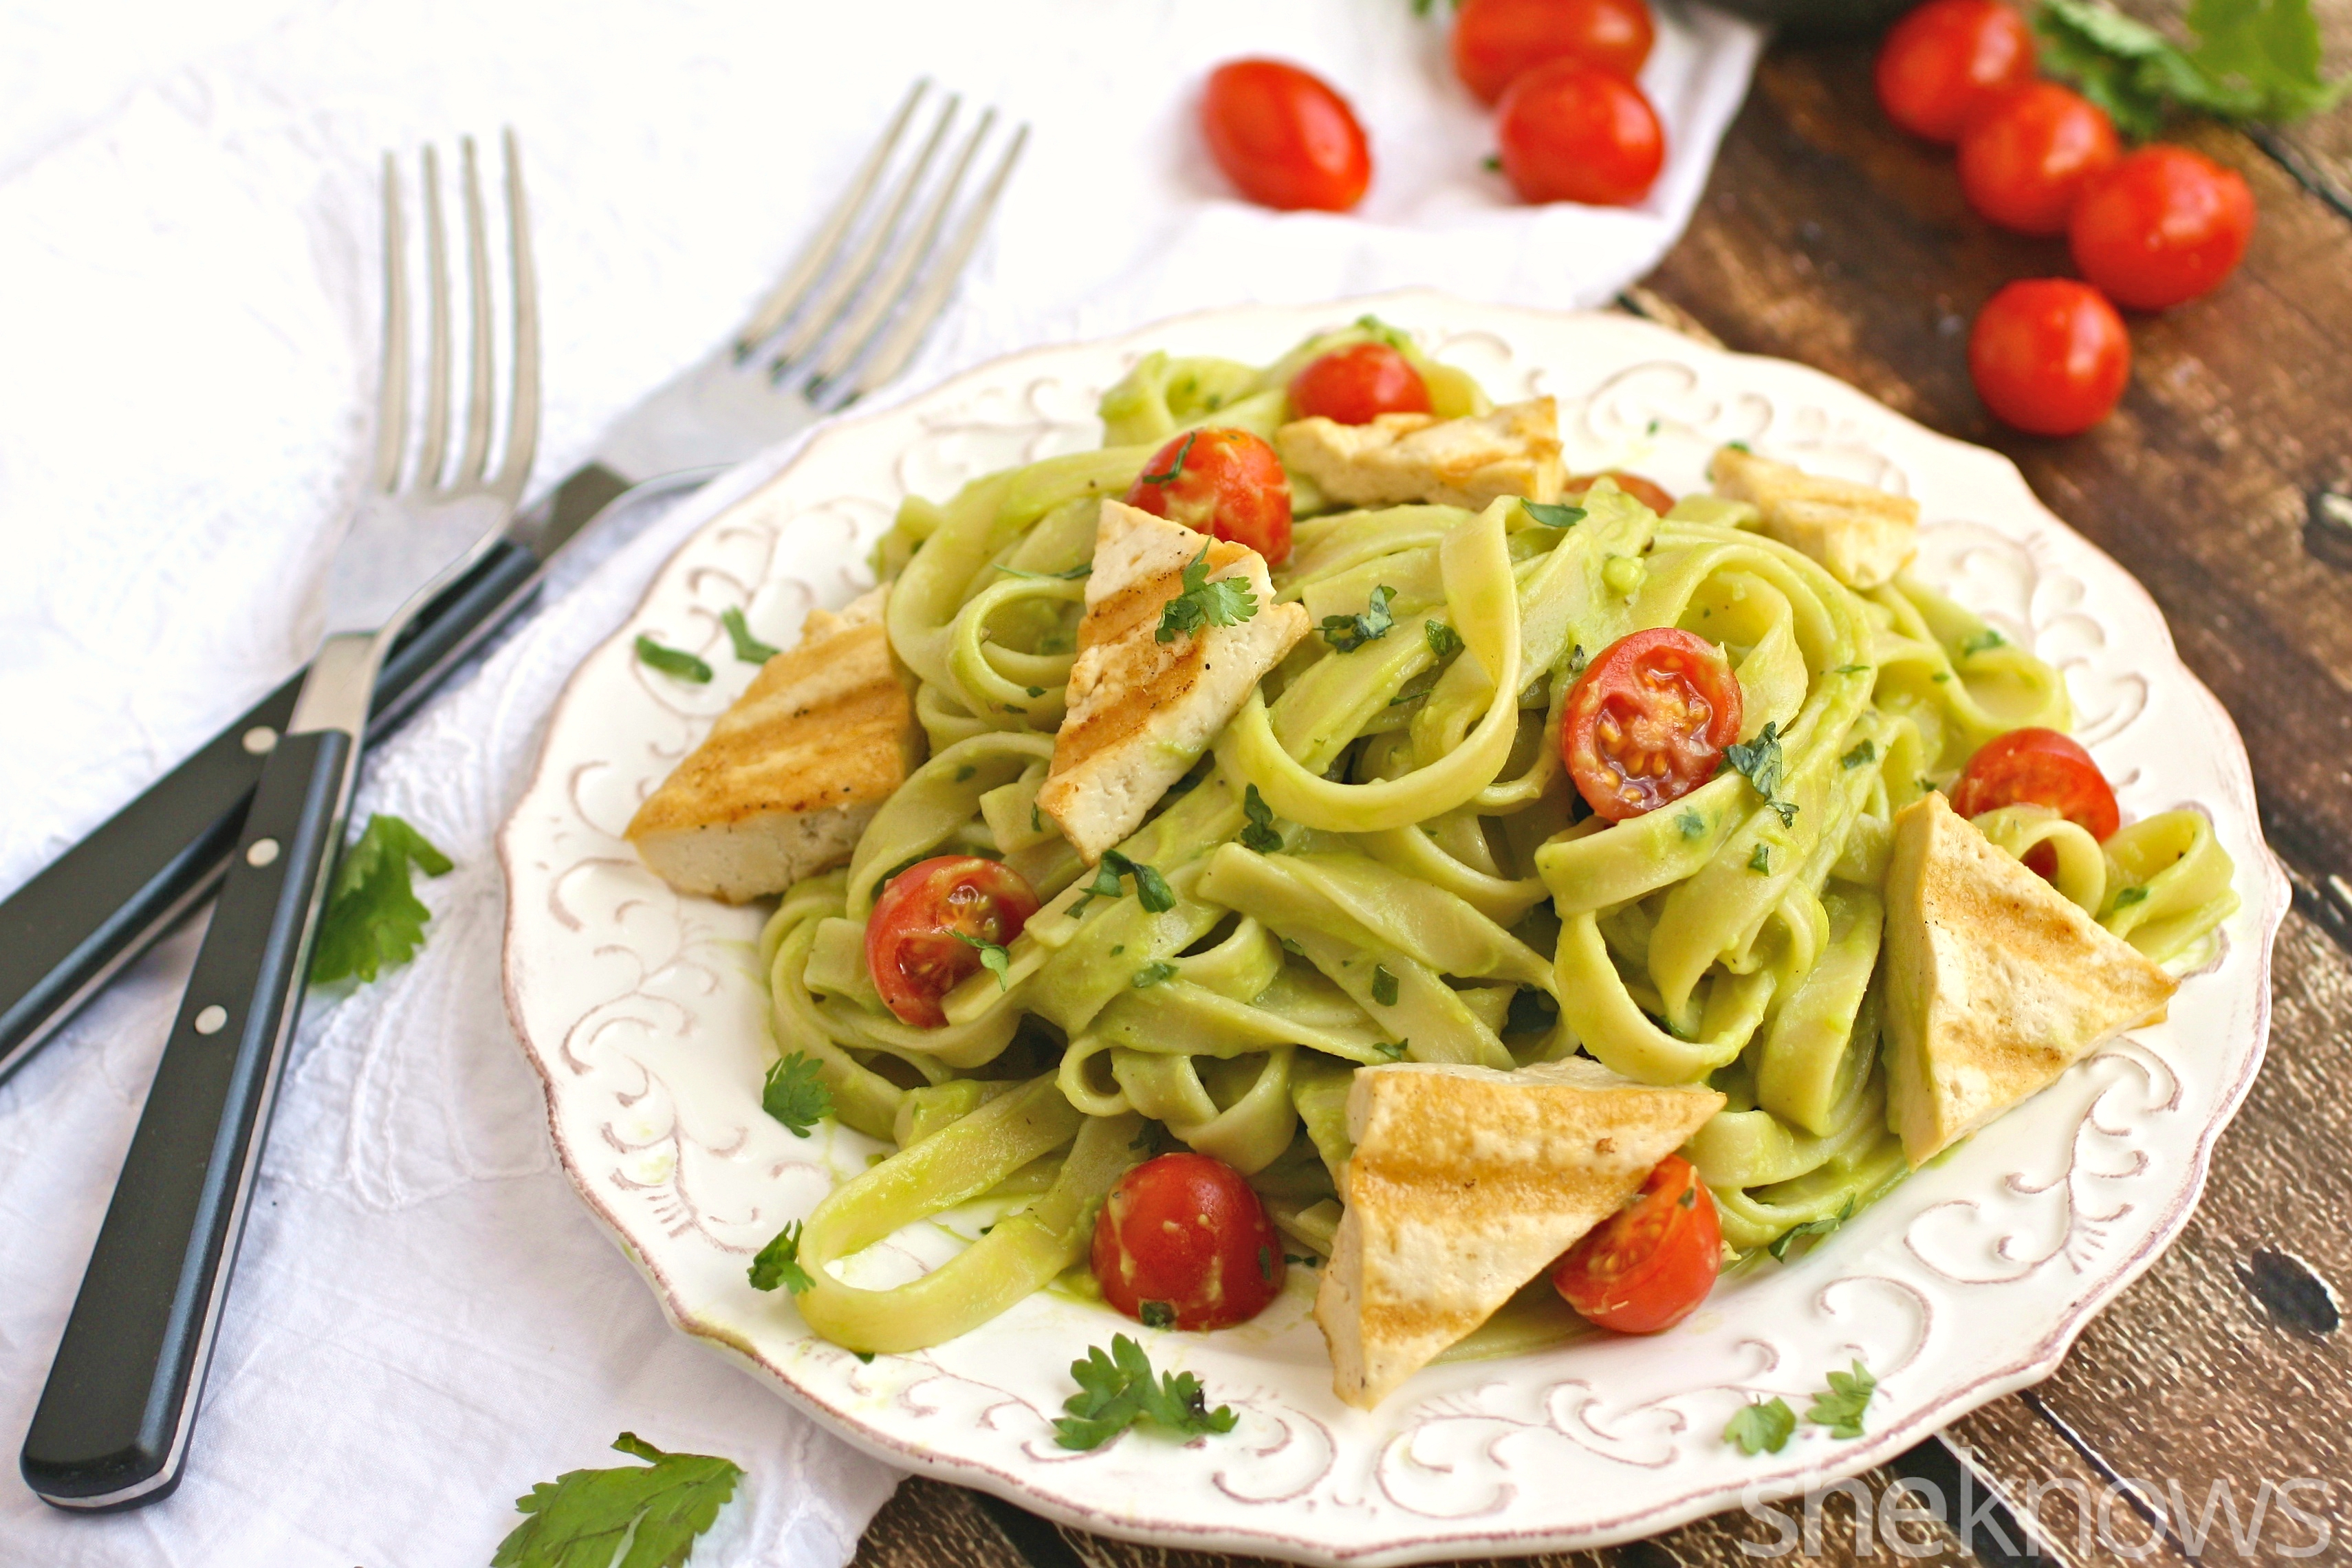 Enjoy this colorful meal: grilled tofu with cilantro-avocado noodles and cherry tomatoes for Meatless Monday